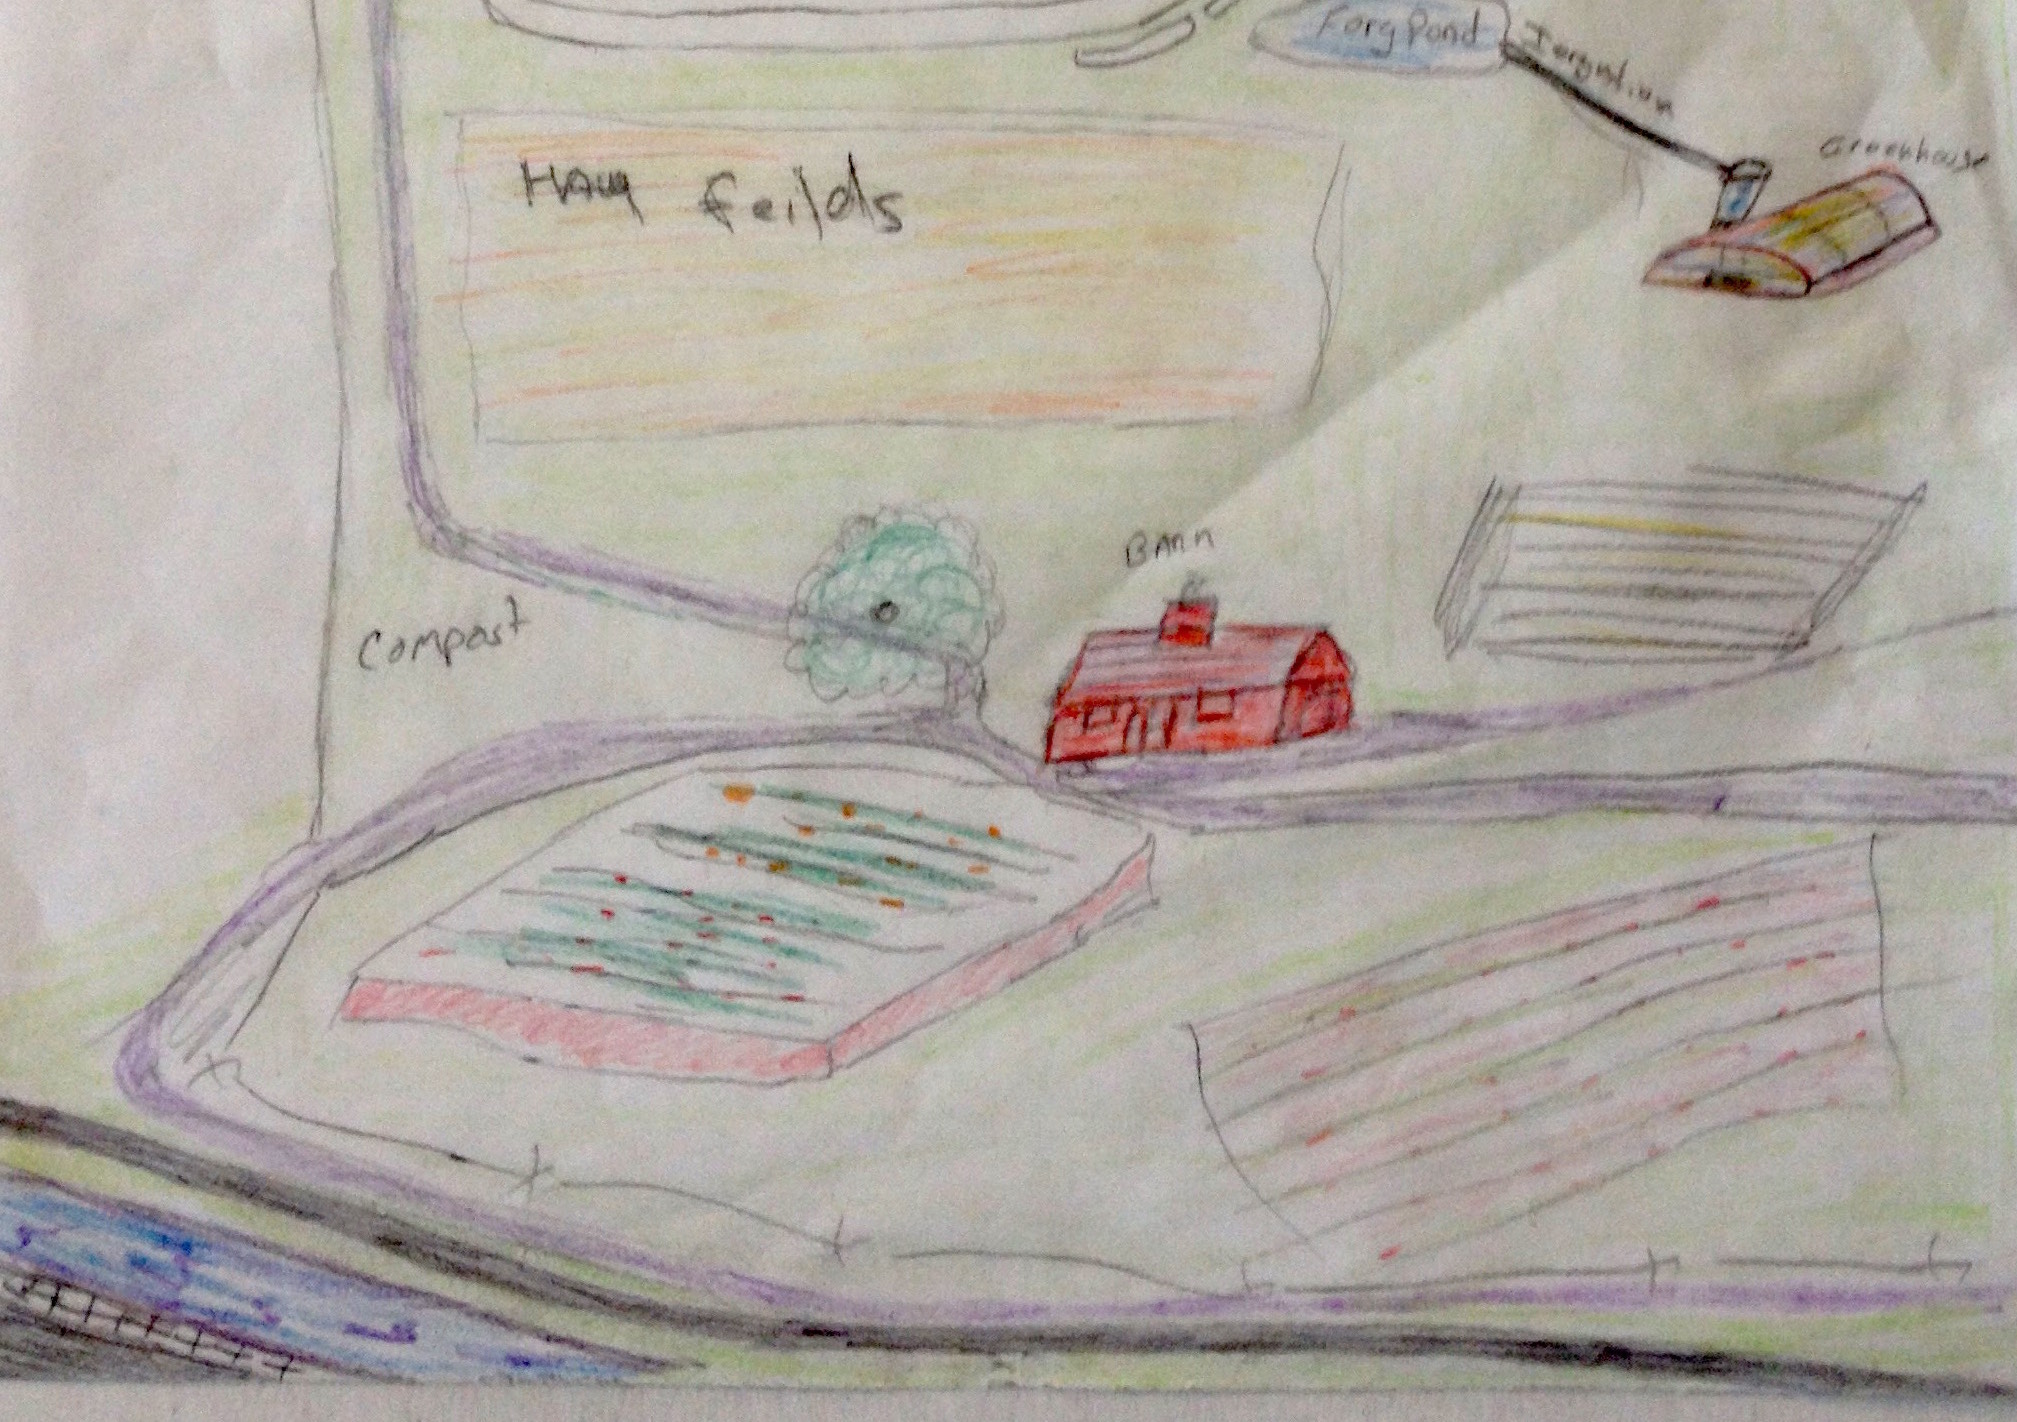 A map of the farm-focused coop developed by students in a class at the Franklin County jail in Massachusetts